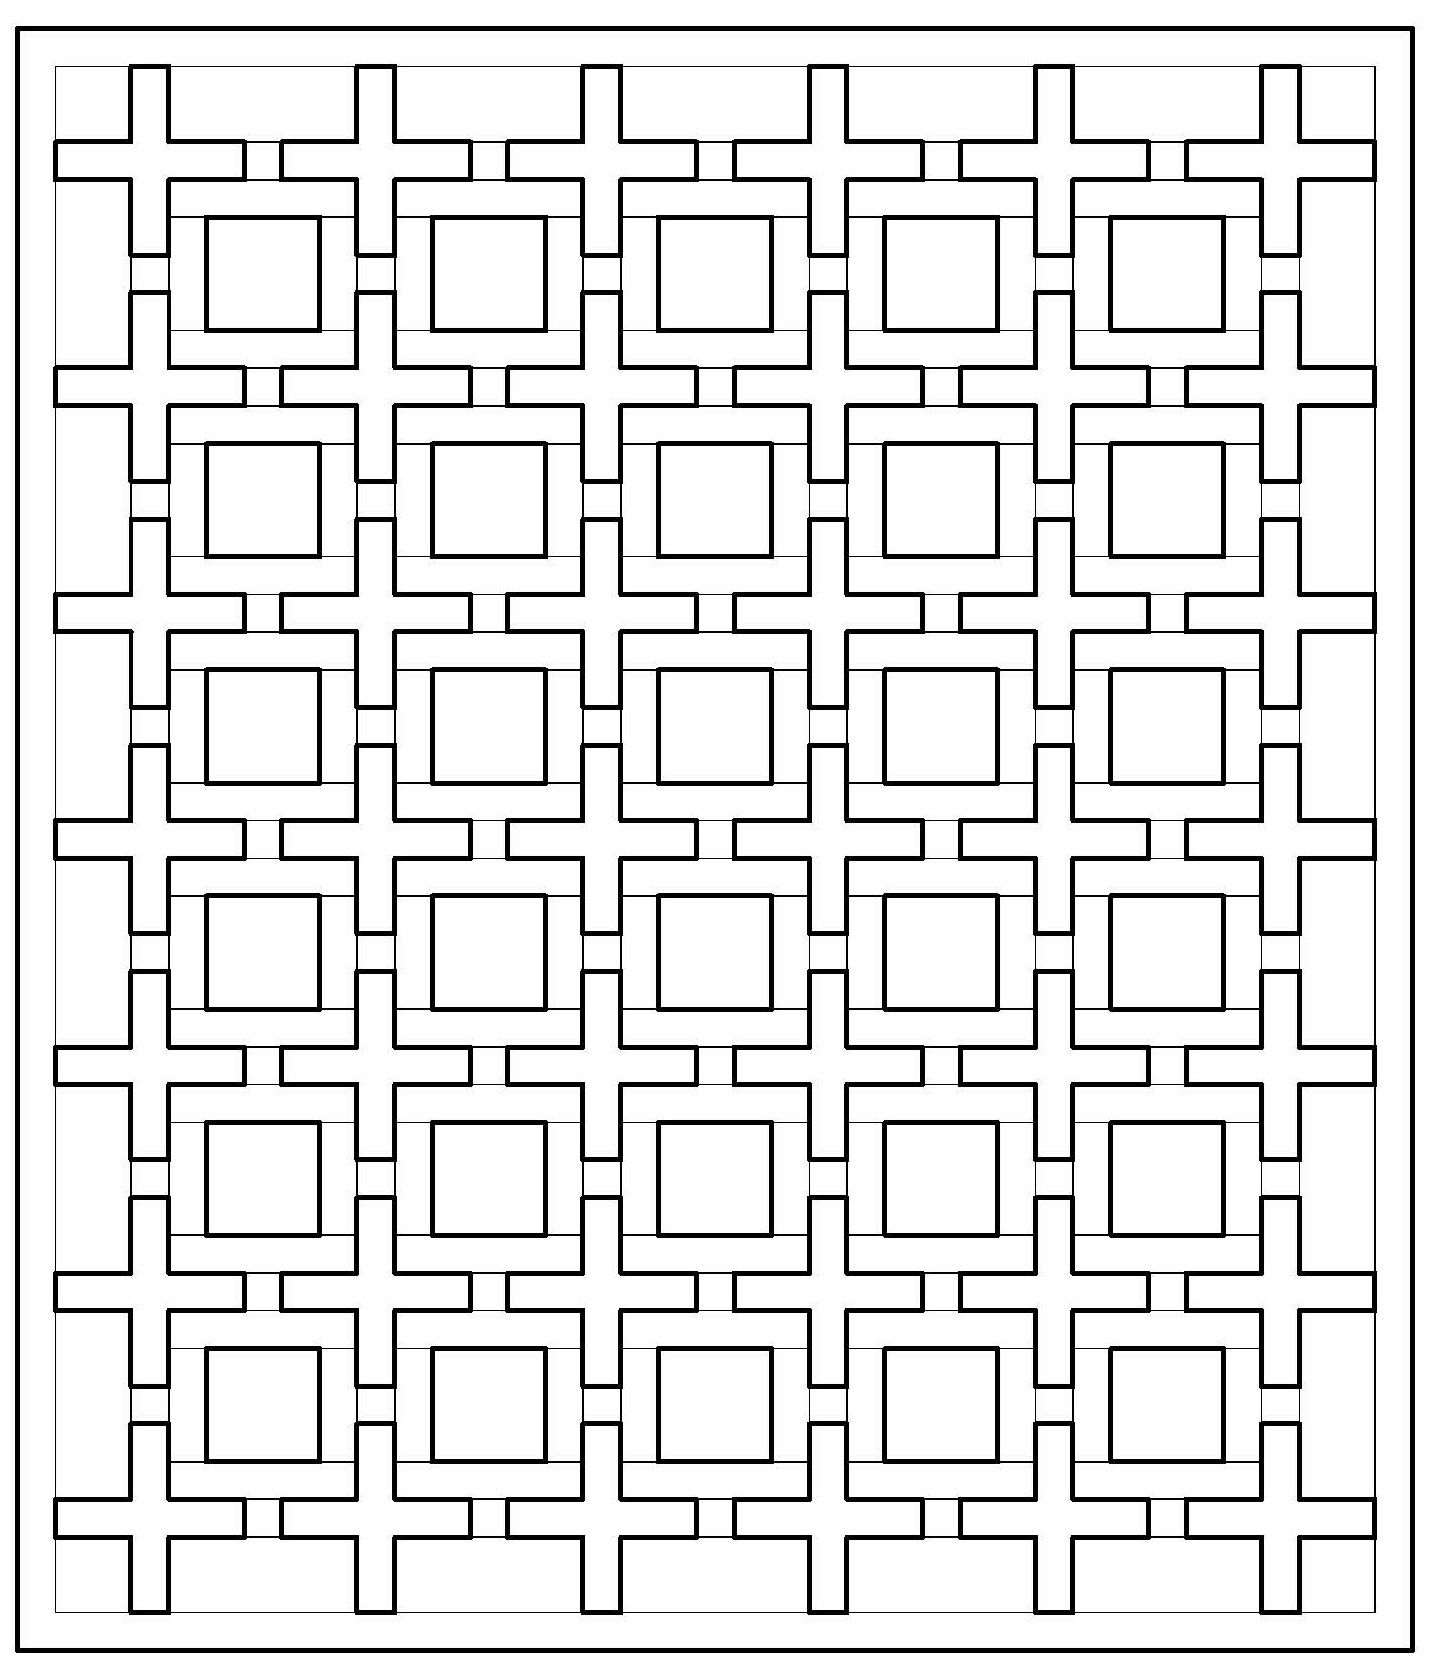 Design Patterns Coloring Pages Make your own coloring page by ...